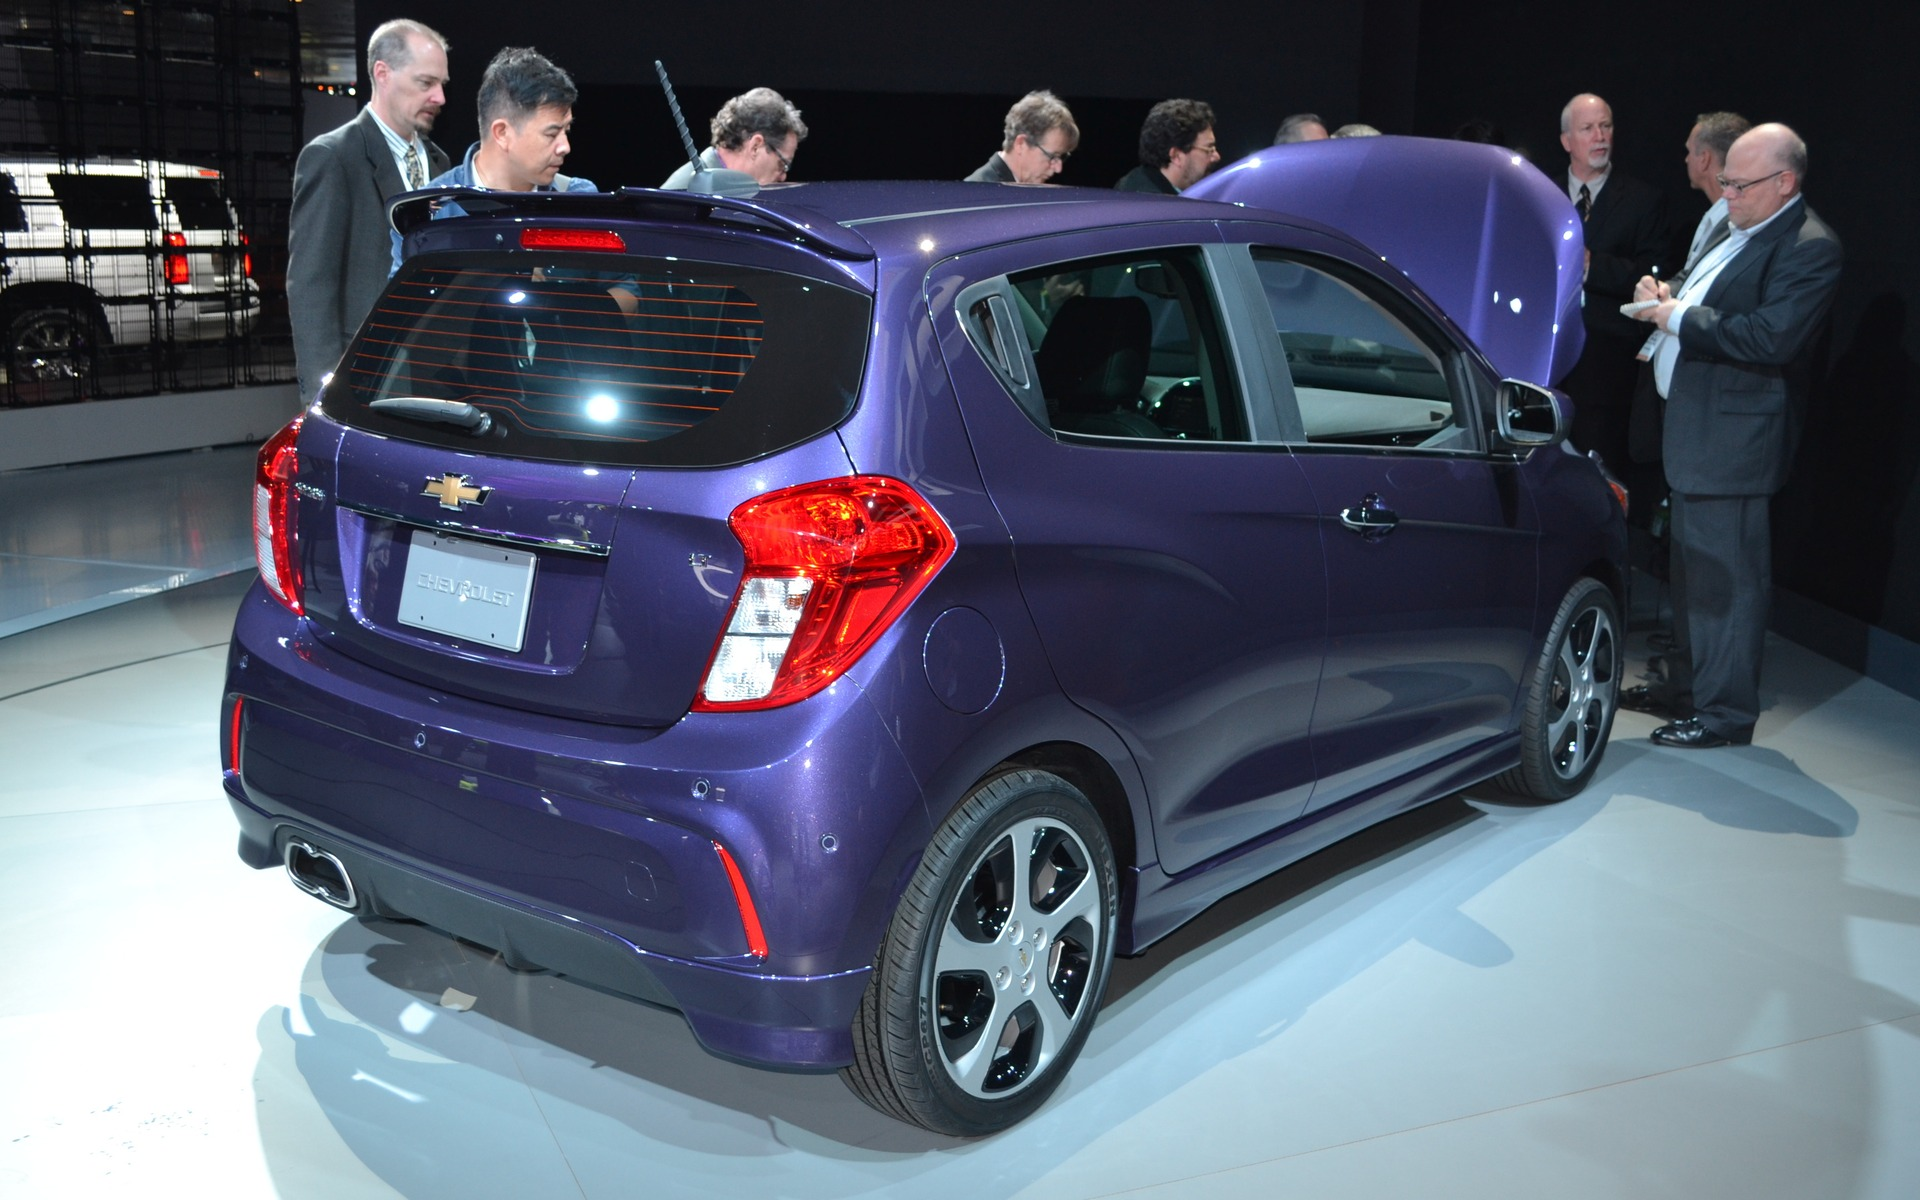 Chevy Spark Purple 2018 2019 New Car Reviews by